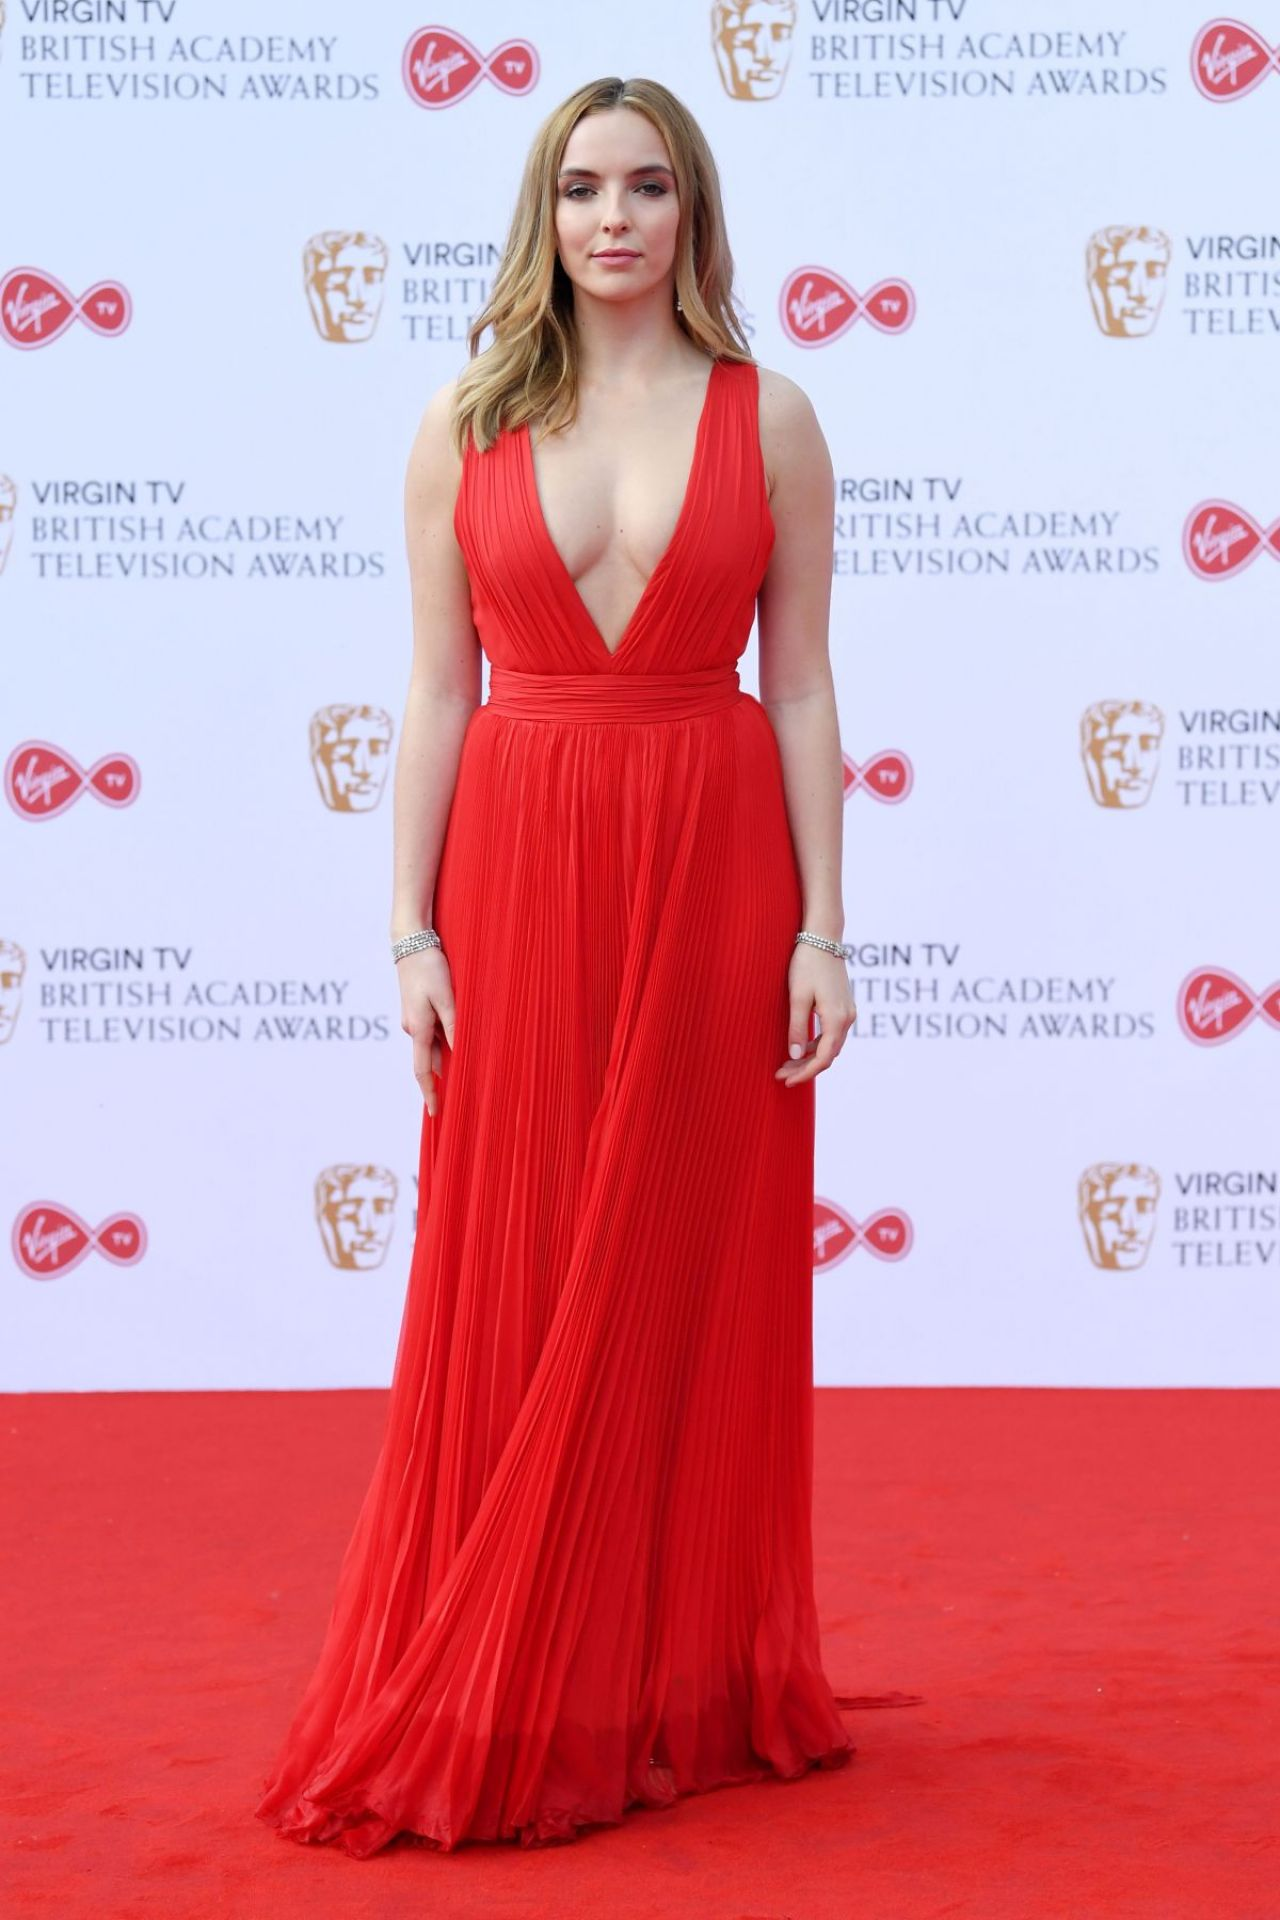 Jodie Comer Bafta Television Awards In London 05 14 2017